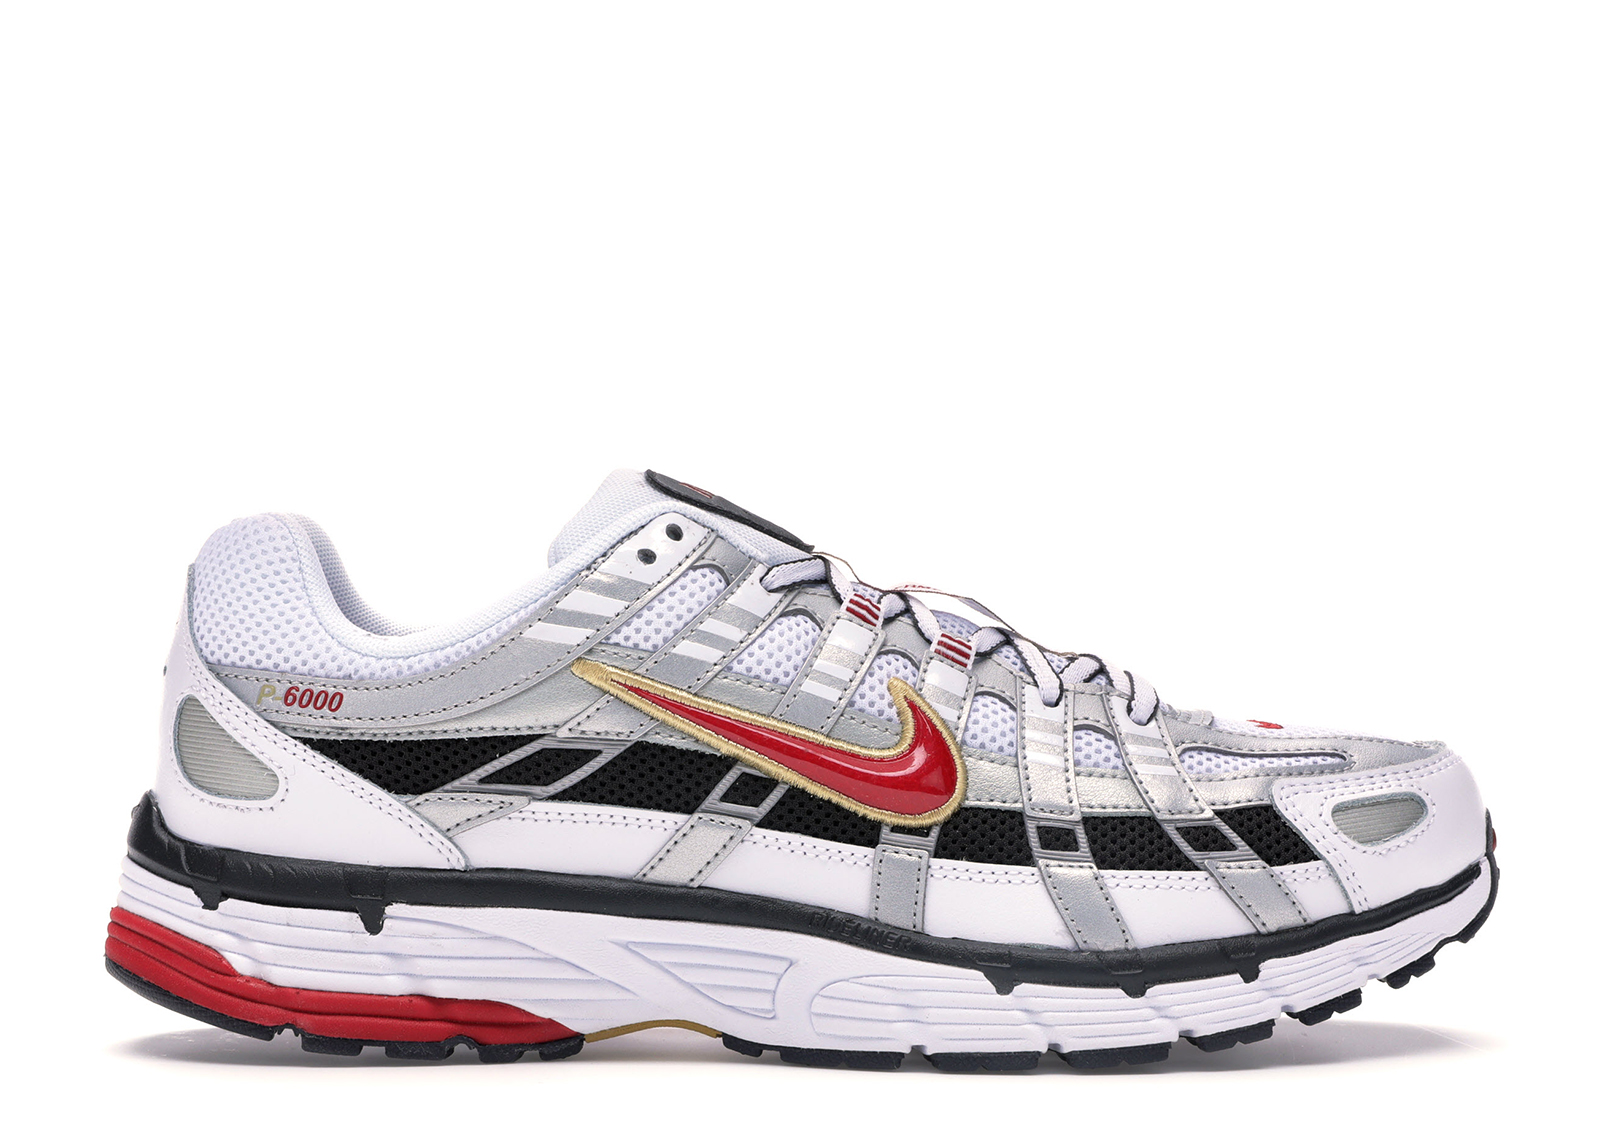 Nike P-6000 White Gold Red (W)